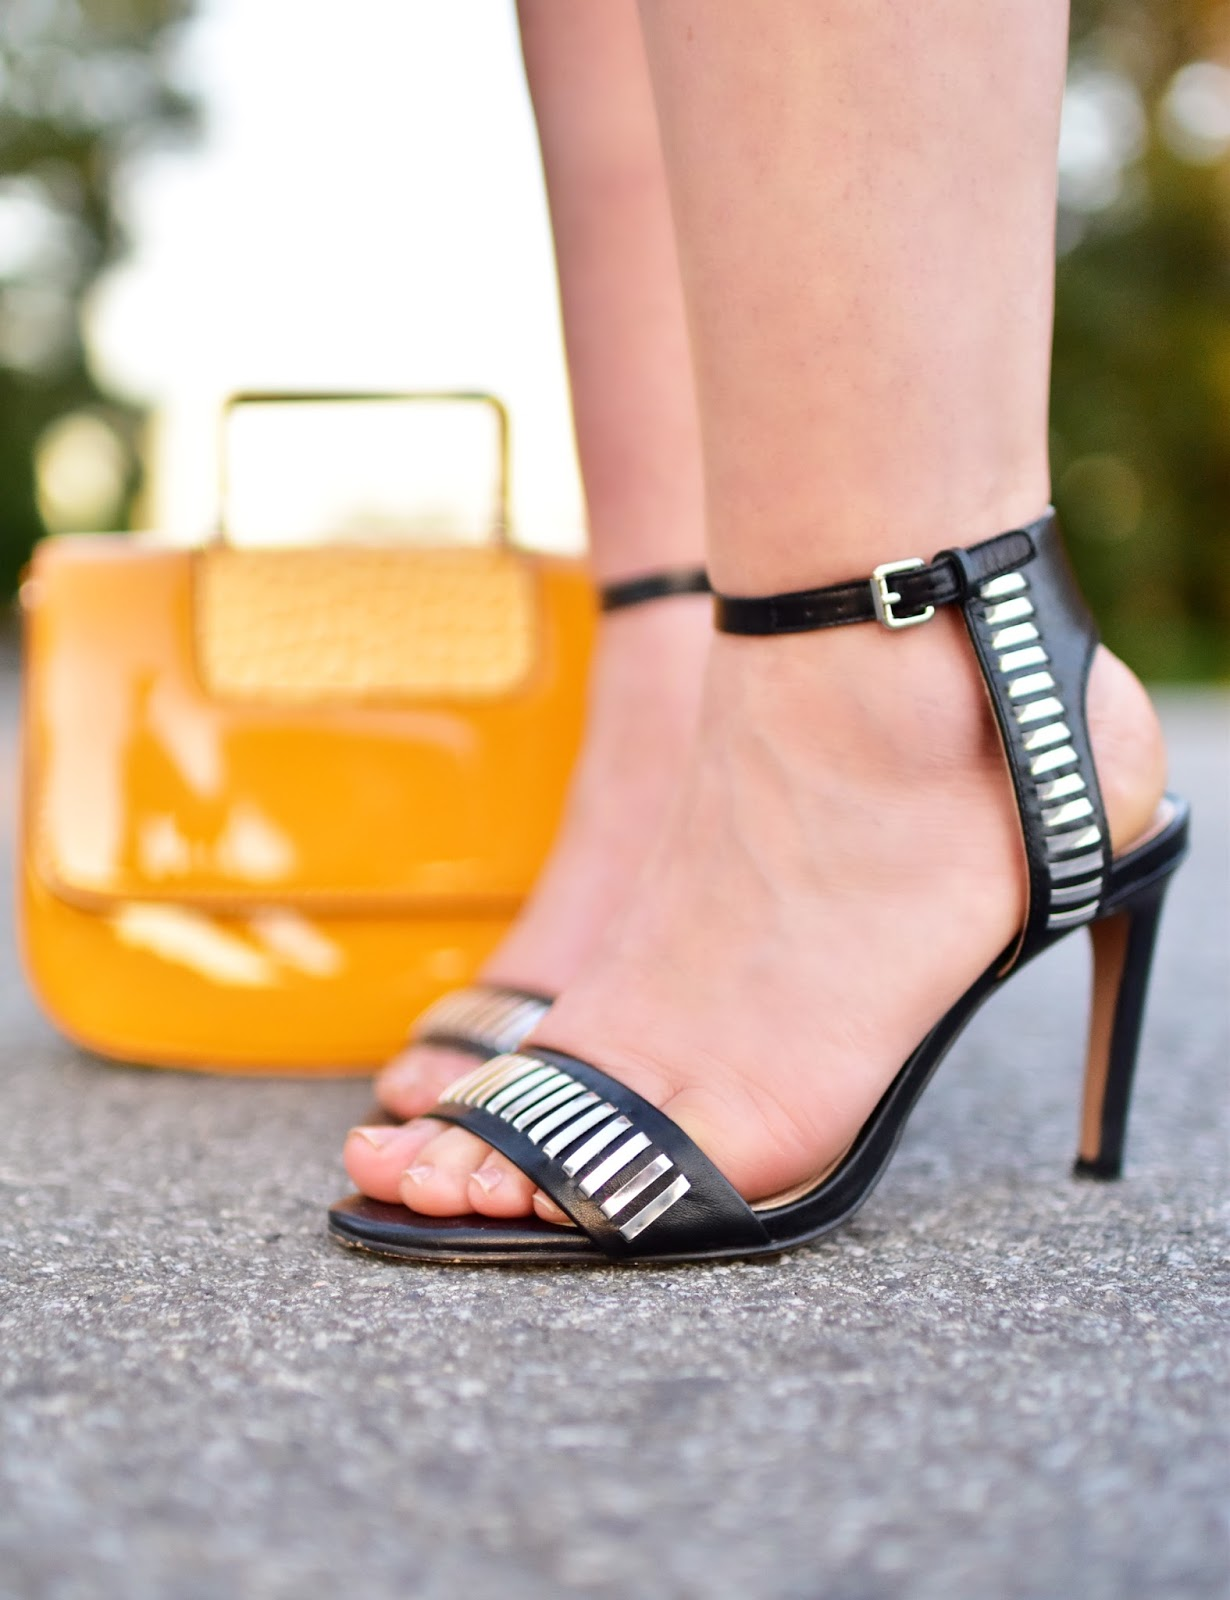 French Connection ankle-strap sandals, yellow patent mini-bag